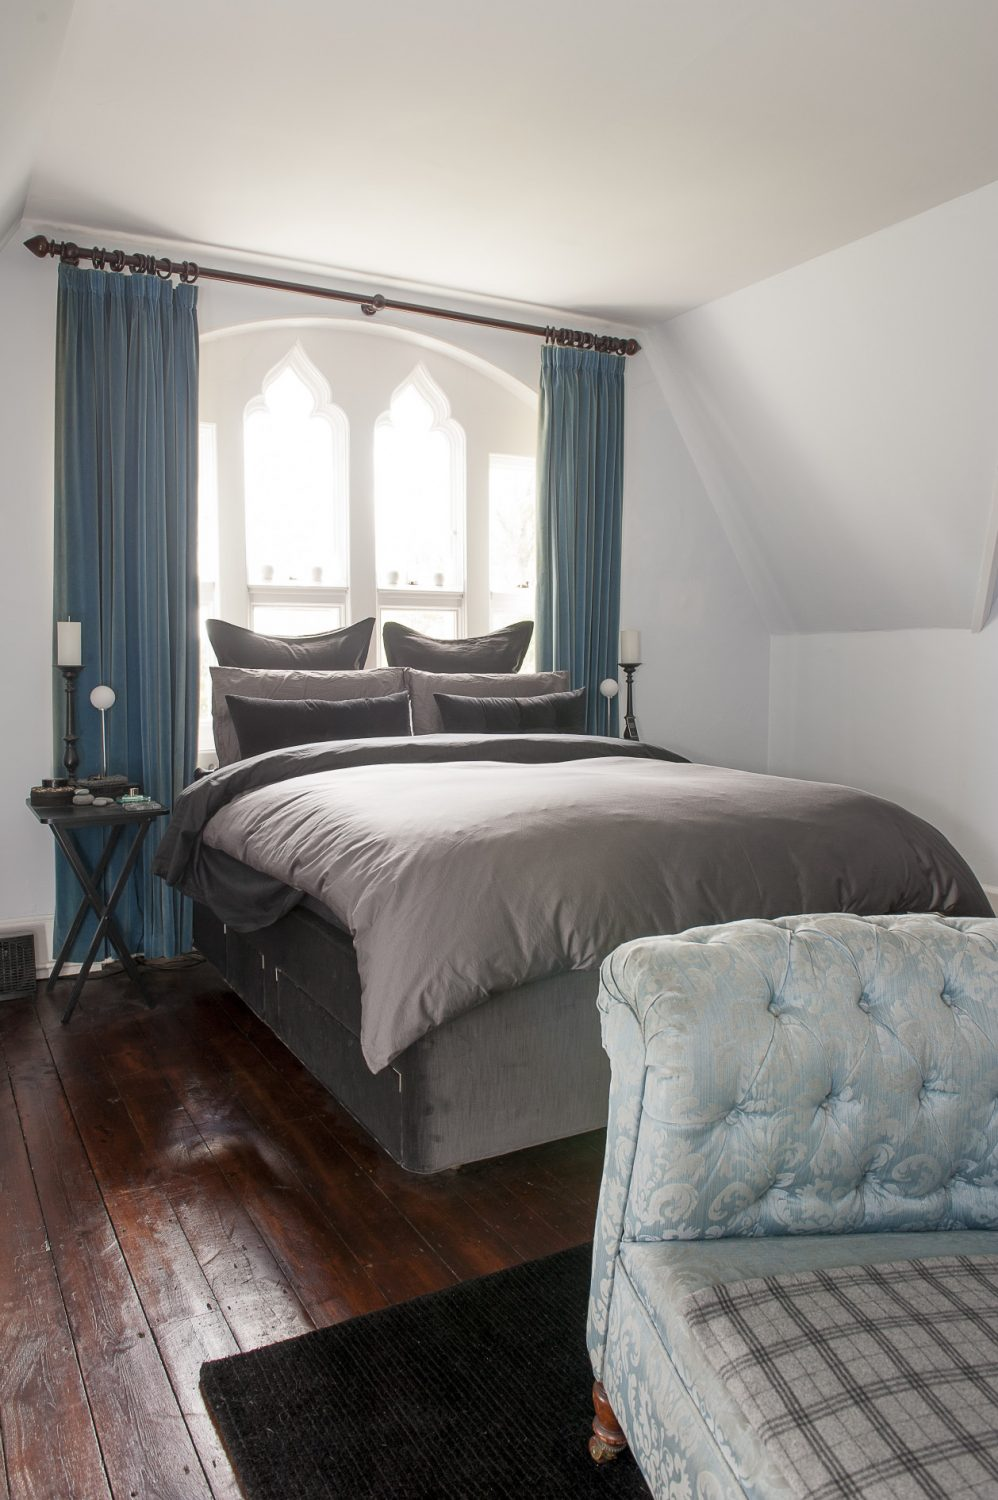 The couple's own bedroom is all greys, pale blues and turquoise warmed by glowing polished oak floorboards